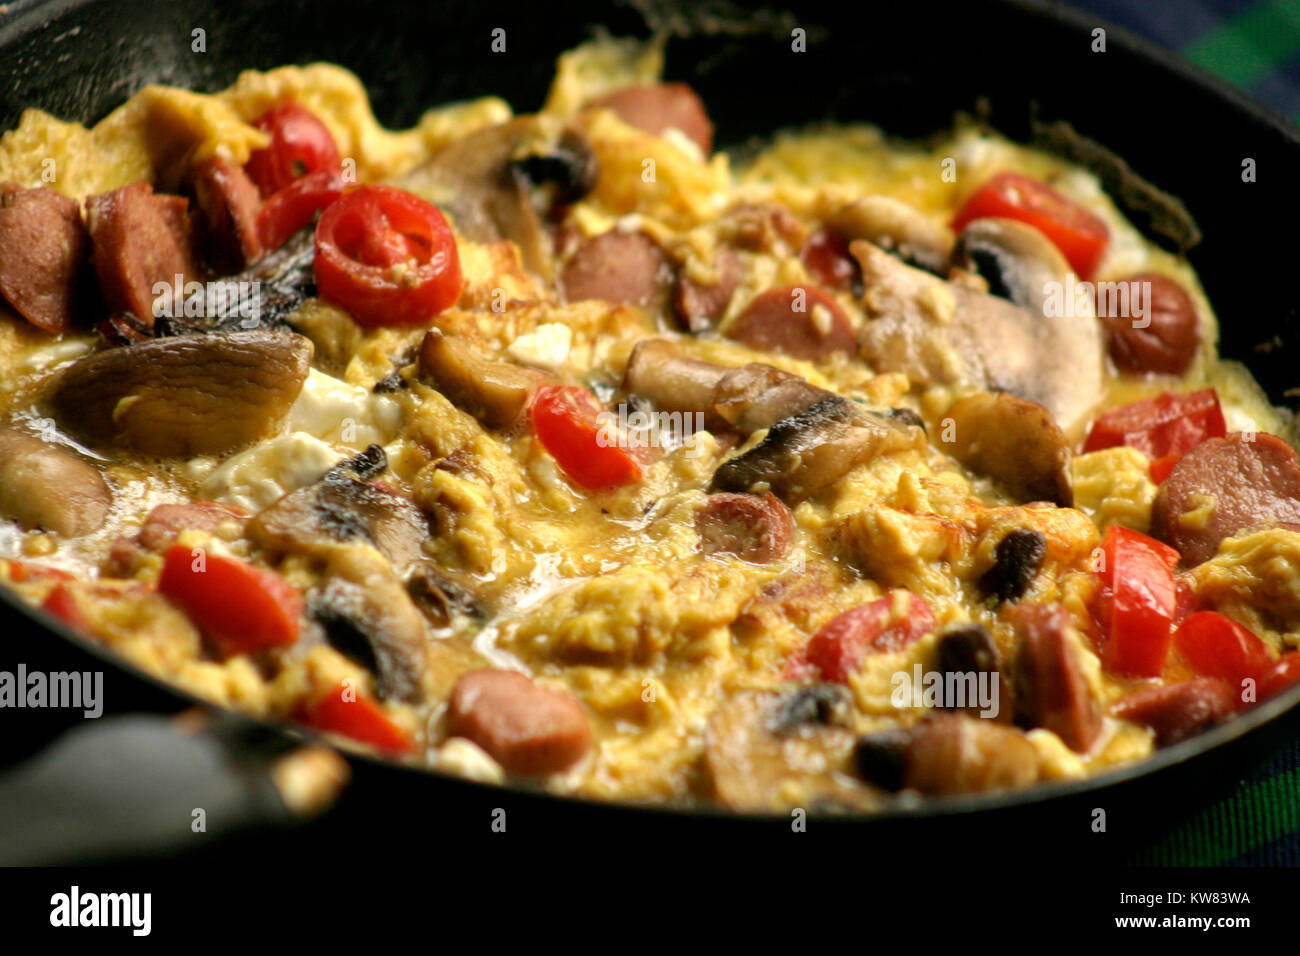 Close-up of omelet with vegetables - Stock Image